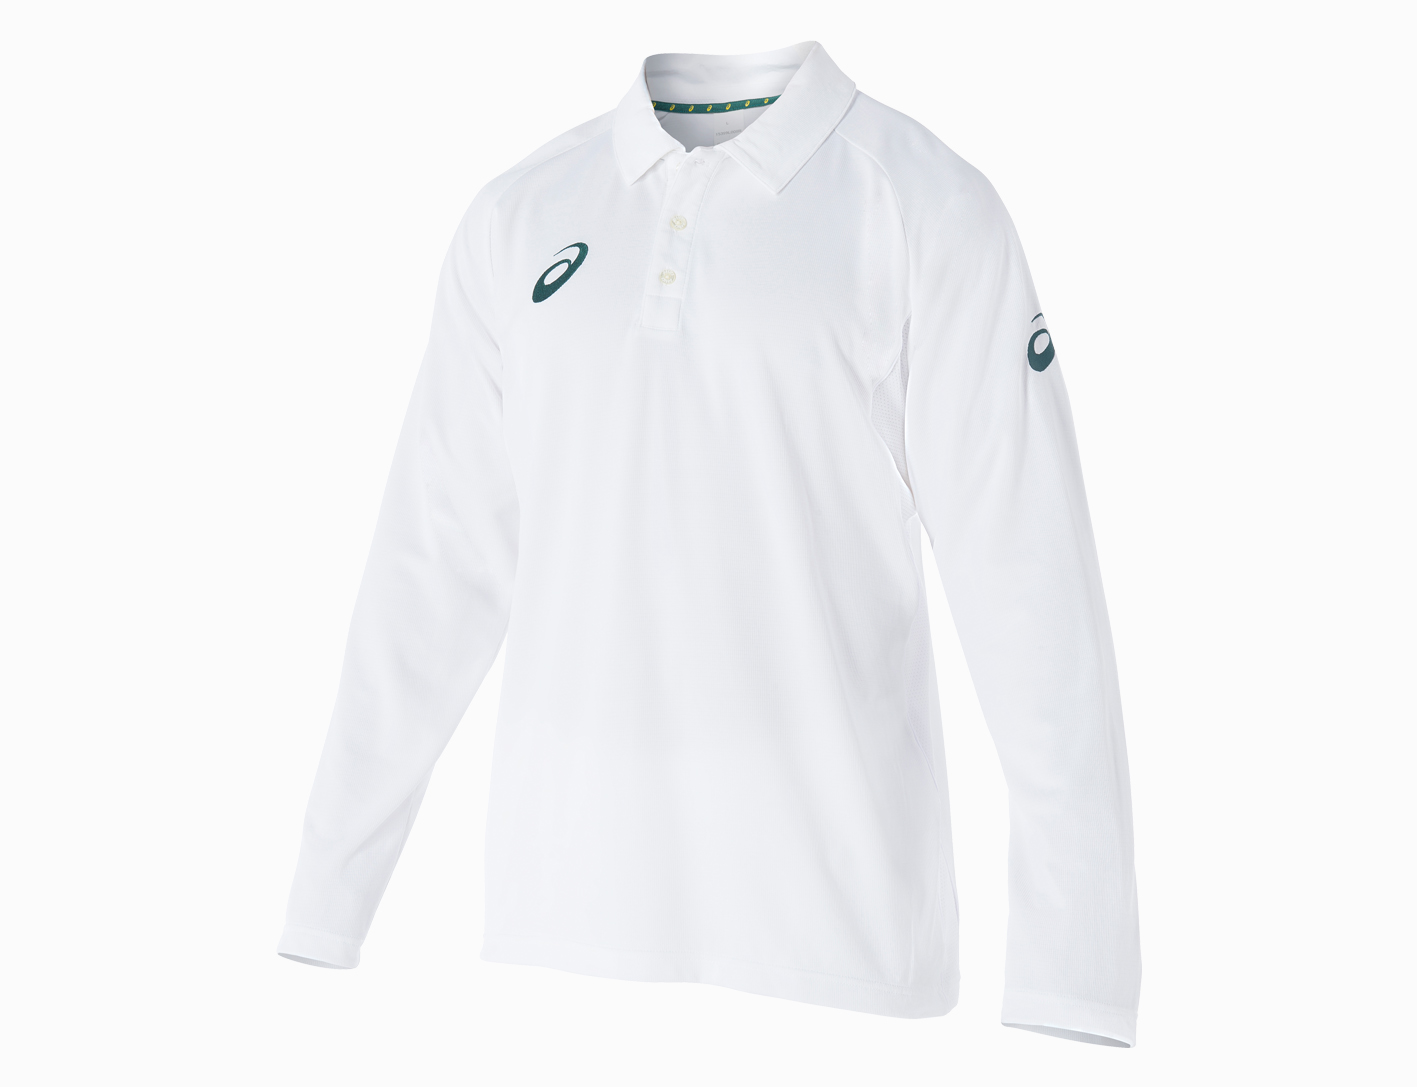 Cricket Clothing